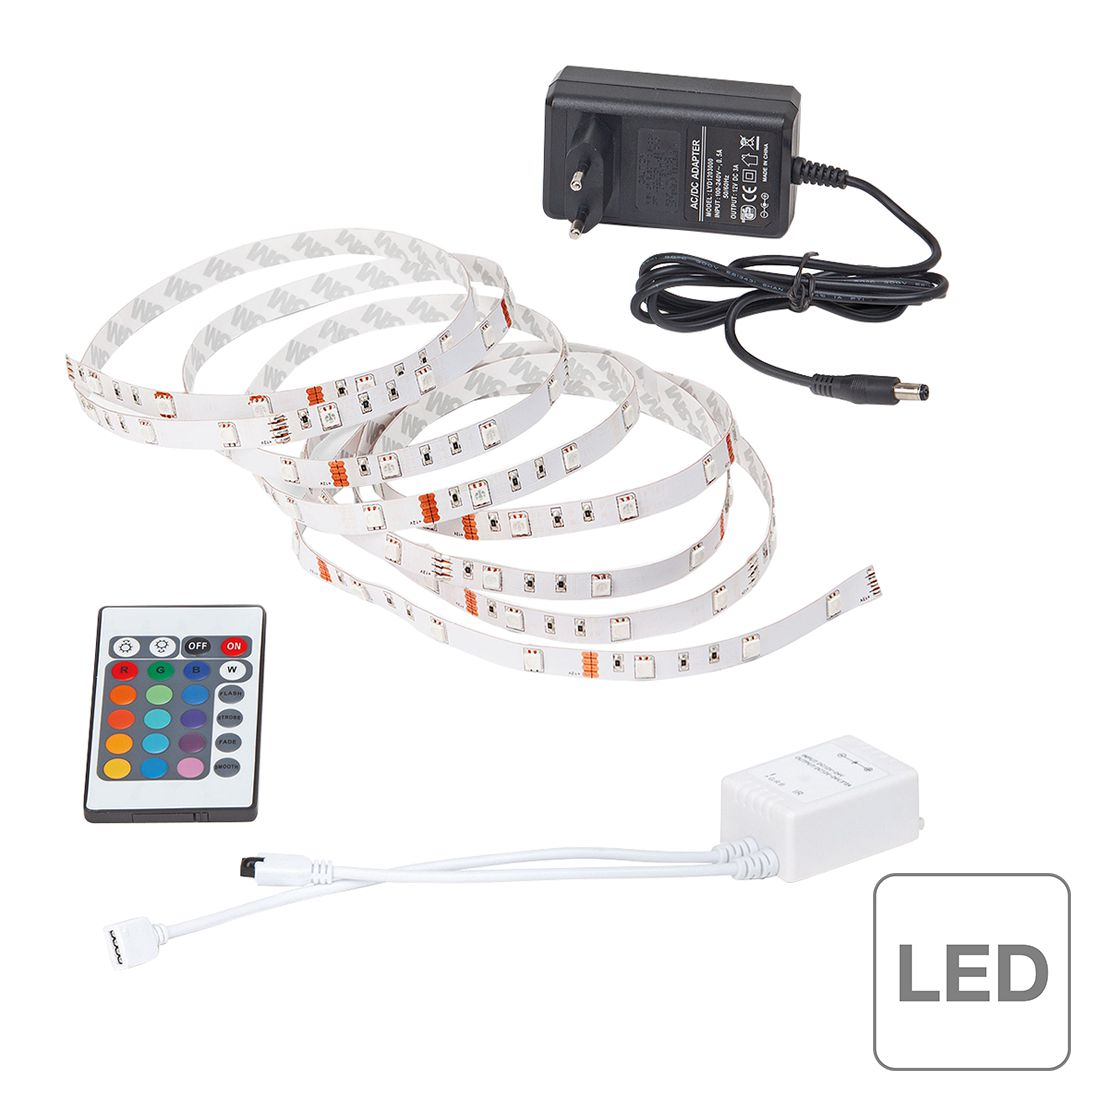 EEK A+, LED-Streifen Light Strip LED – 3-flammig, Brilliant online kaufen